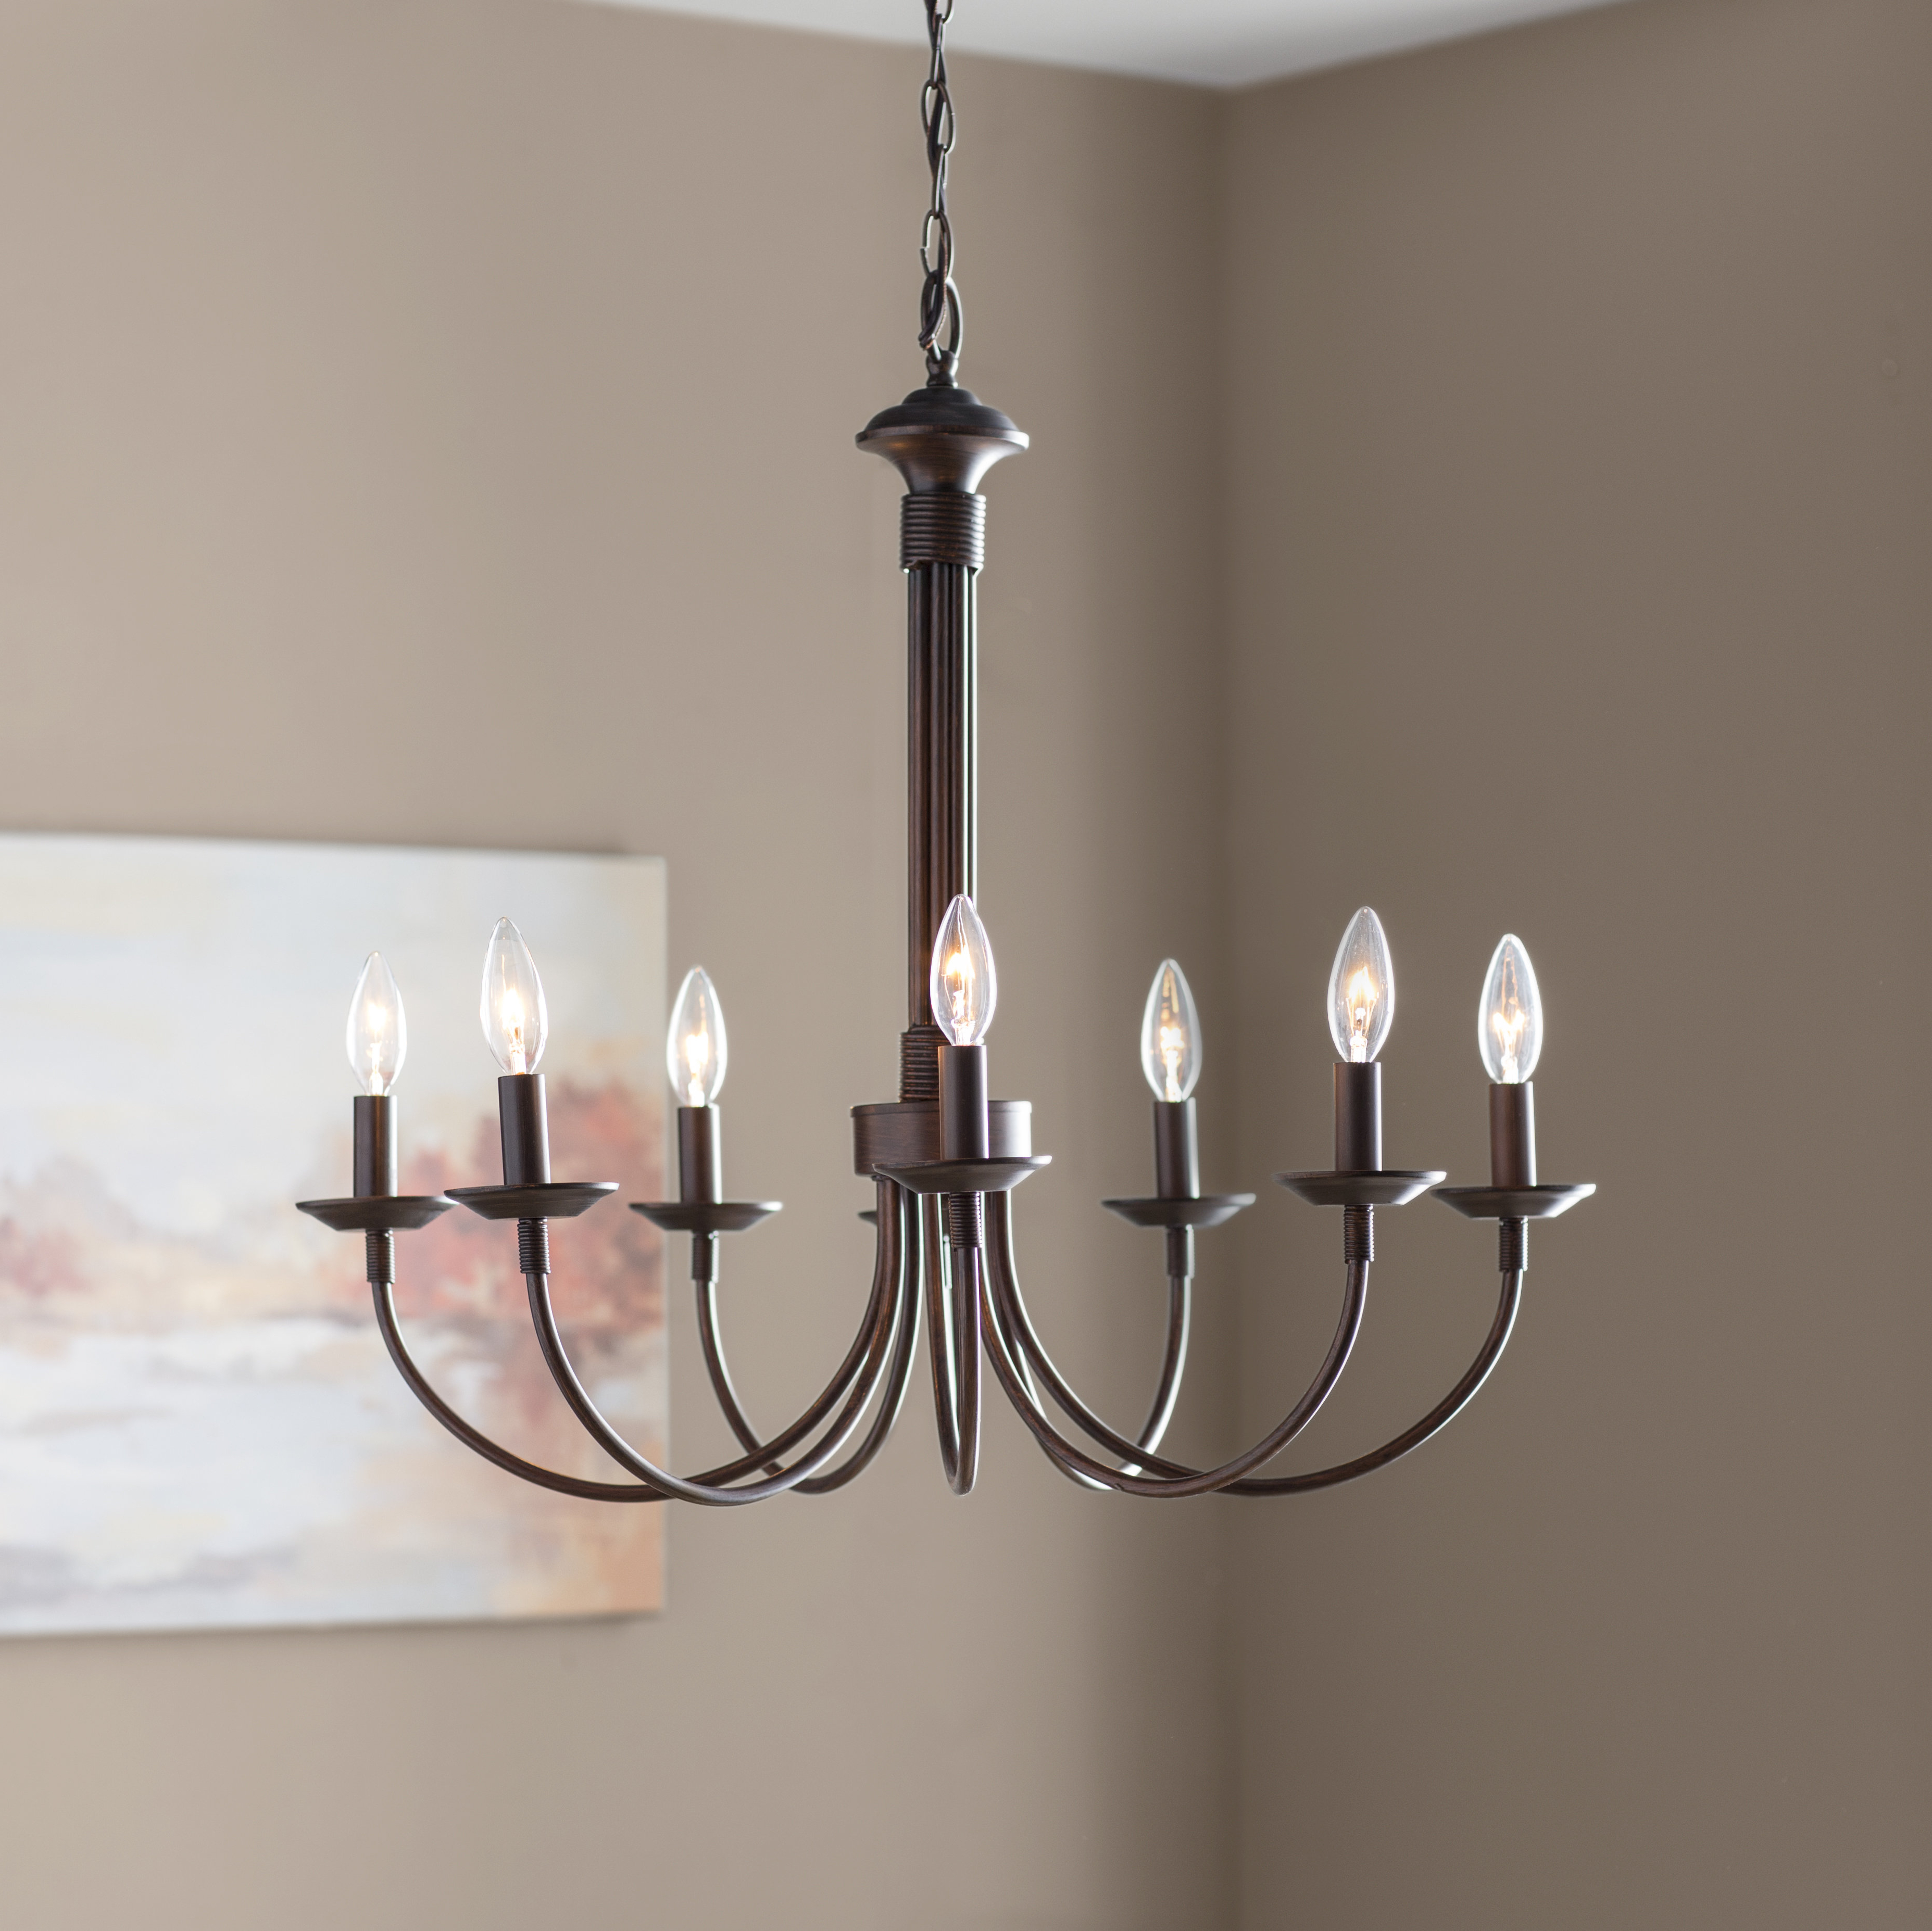 Laurel Foundry Modern Farmhouse Shaylee 8 Light Candle Style Chandelier Within 2019 Kenedy 9 Light Candle Style Chandeliers (View 12 of 25)